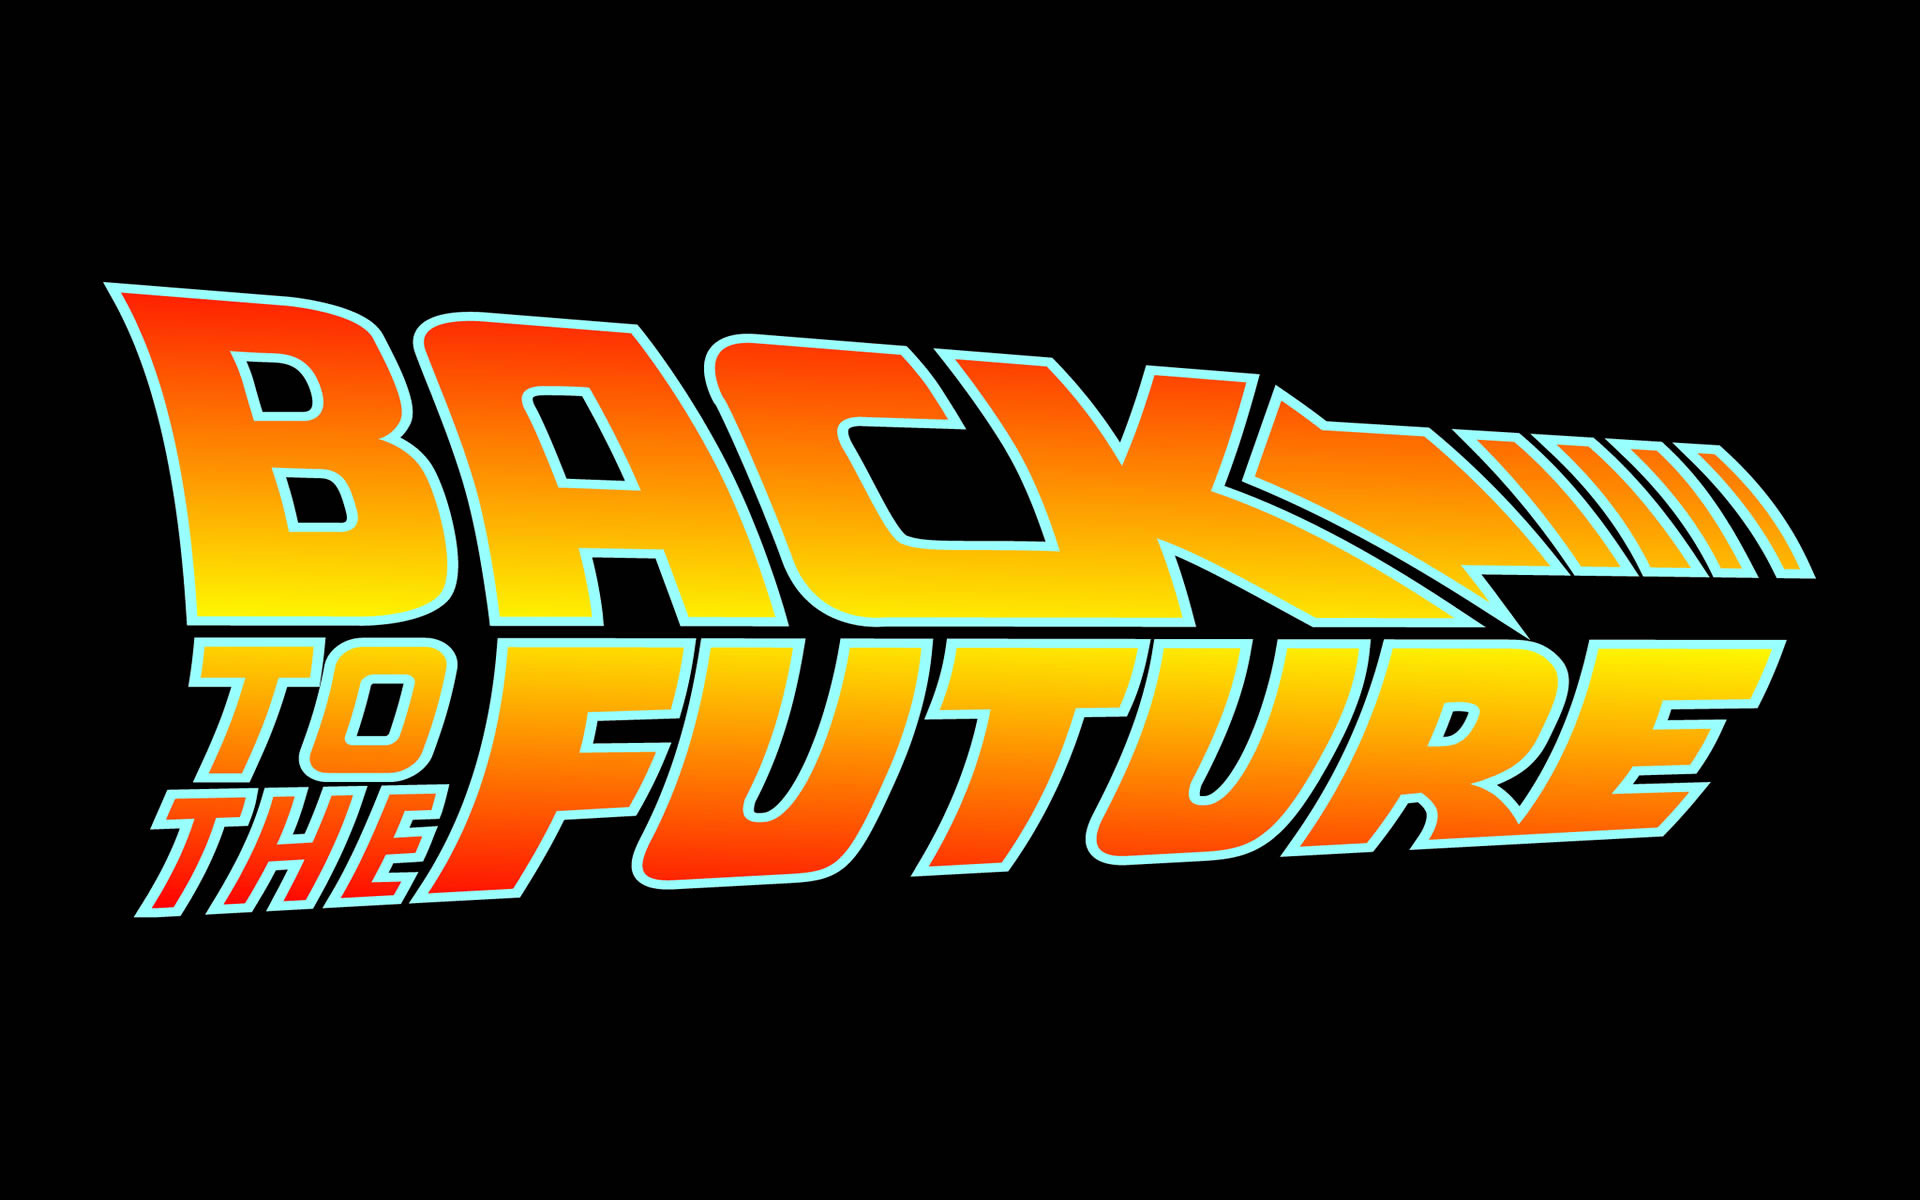 Wallpaper Logo Regreso al futuro